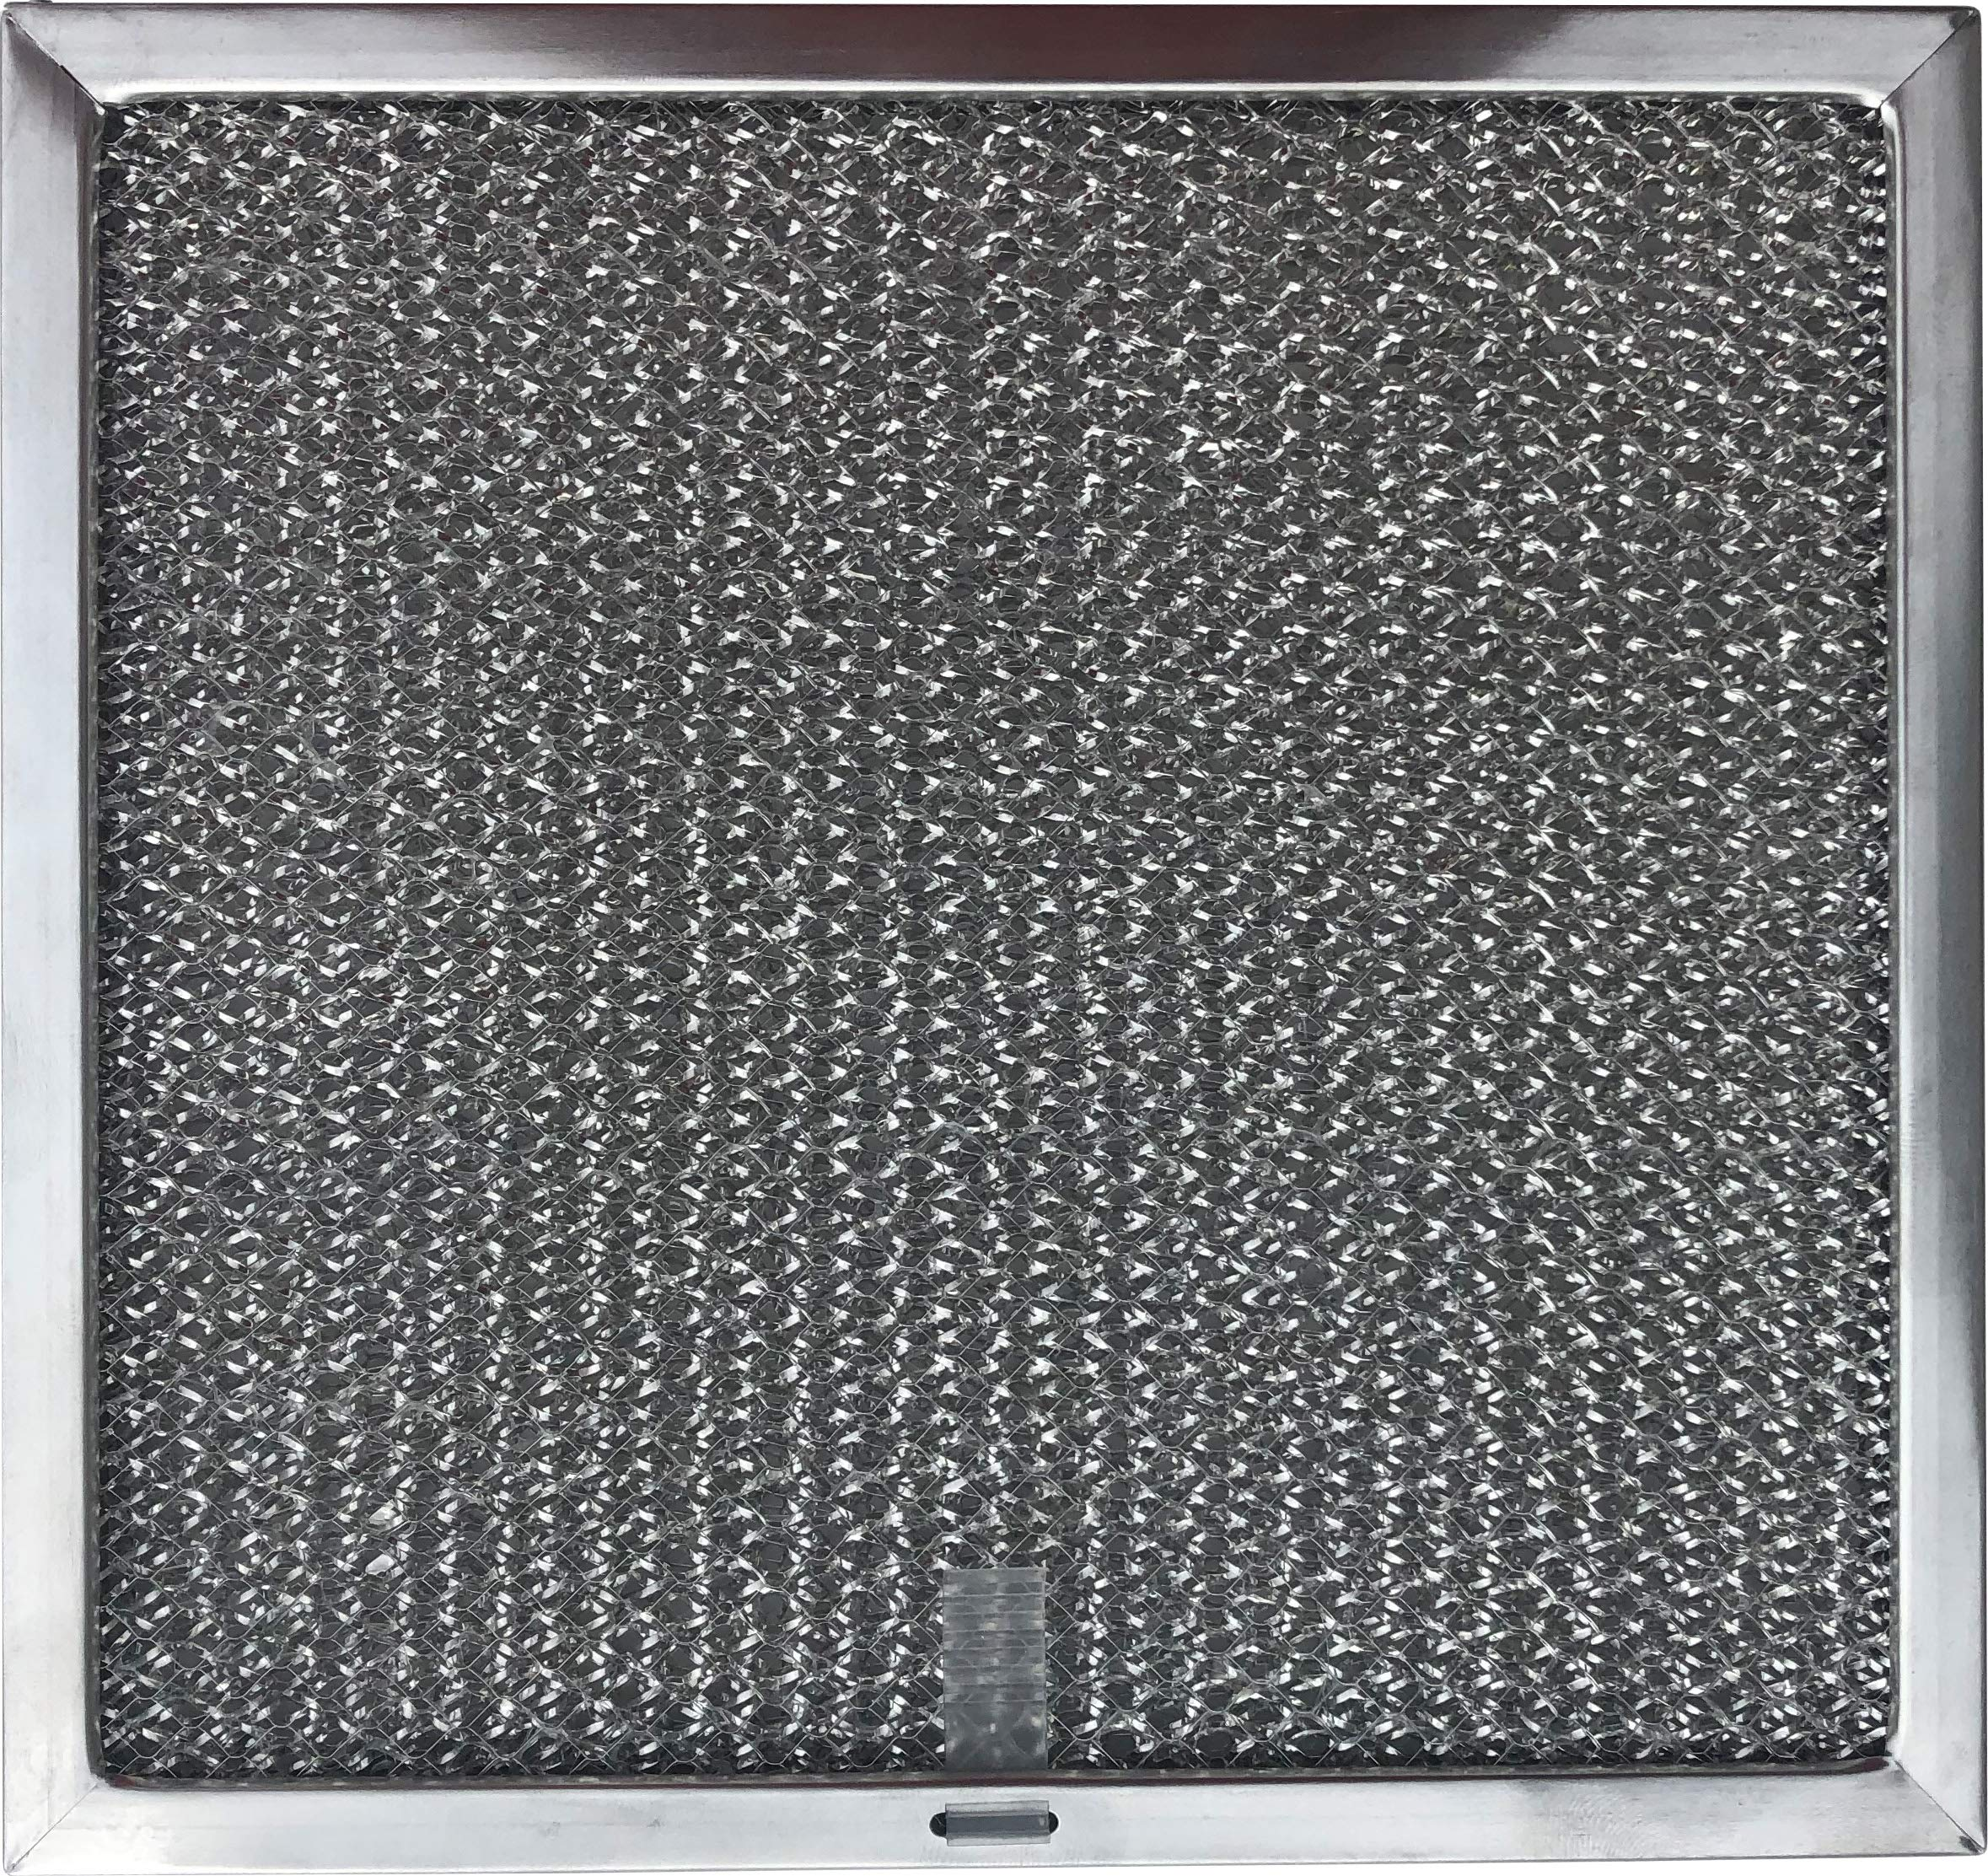 Replacement Range Filter Compatible with Thermador and Bosch Part 19 11 860 01  8 7/8 x 9 1/2 x 3/8